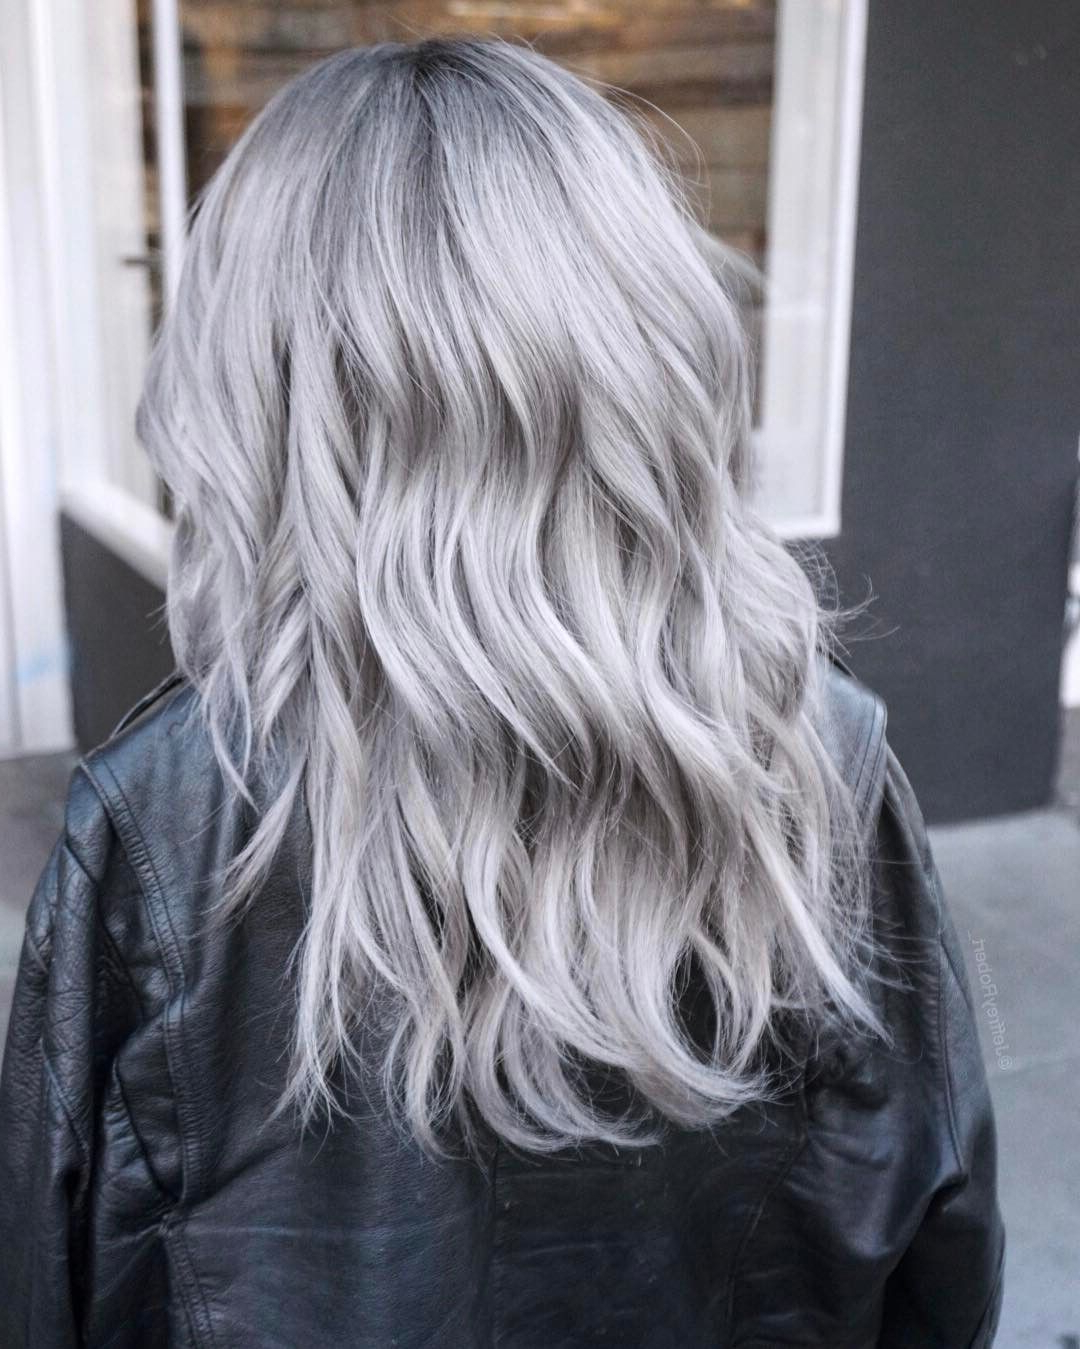 Icy Silver Hair Transformation Is The 2019's Coolest Trend In 2019 For Newest Loose Layers Hairstyles With Silver Highlights (Gallery 5 of 20)